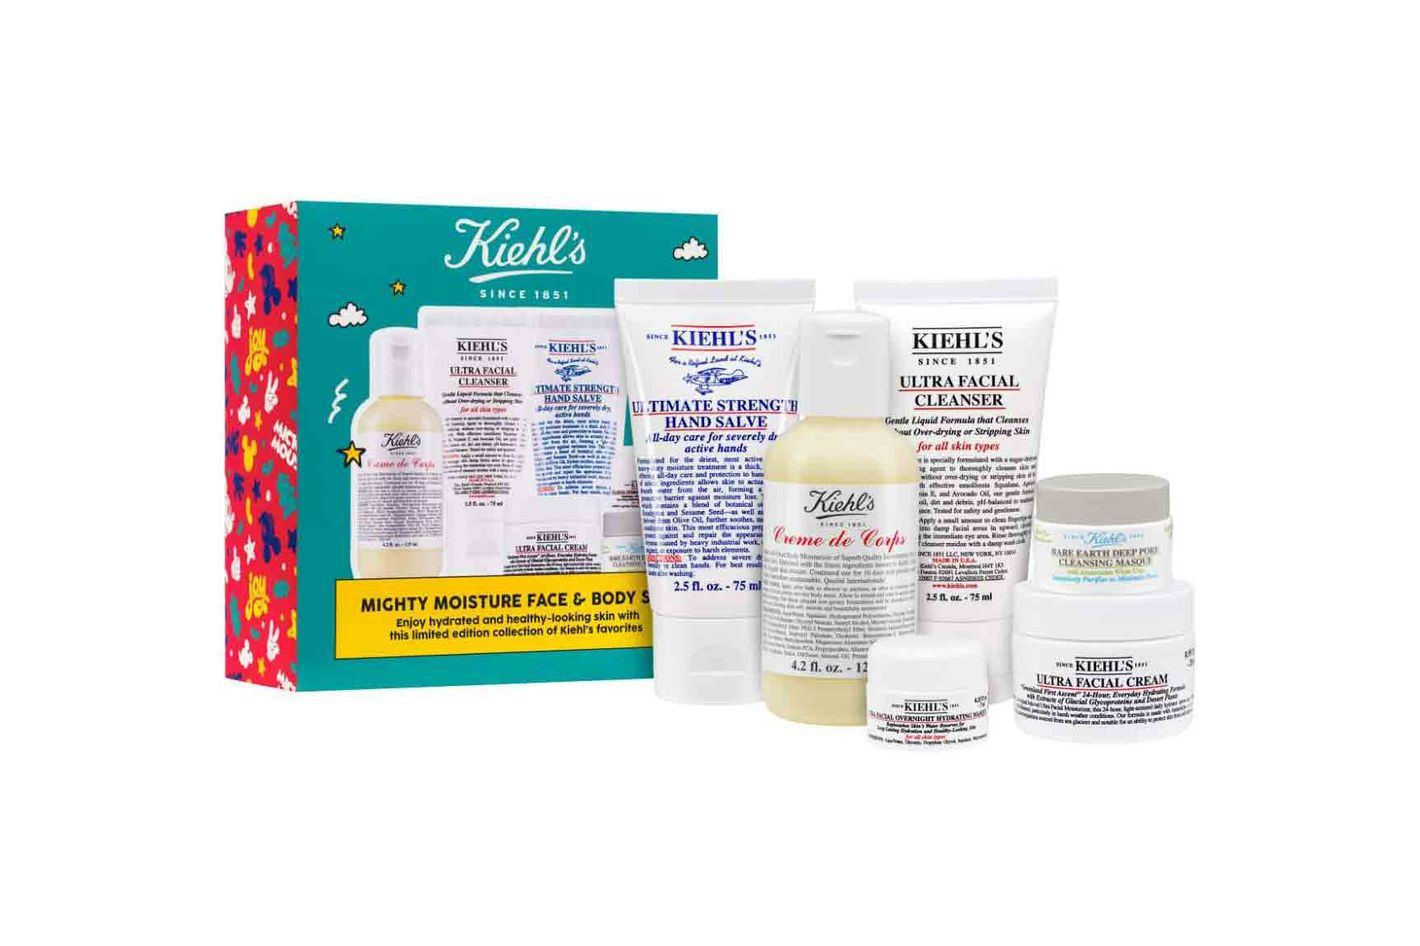 Disney x Kiehl's Since 1851 Mighty Moisture Face & Body Set